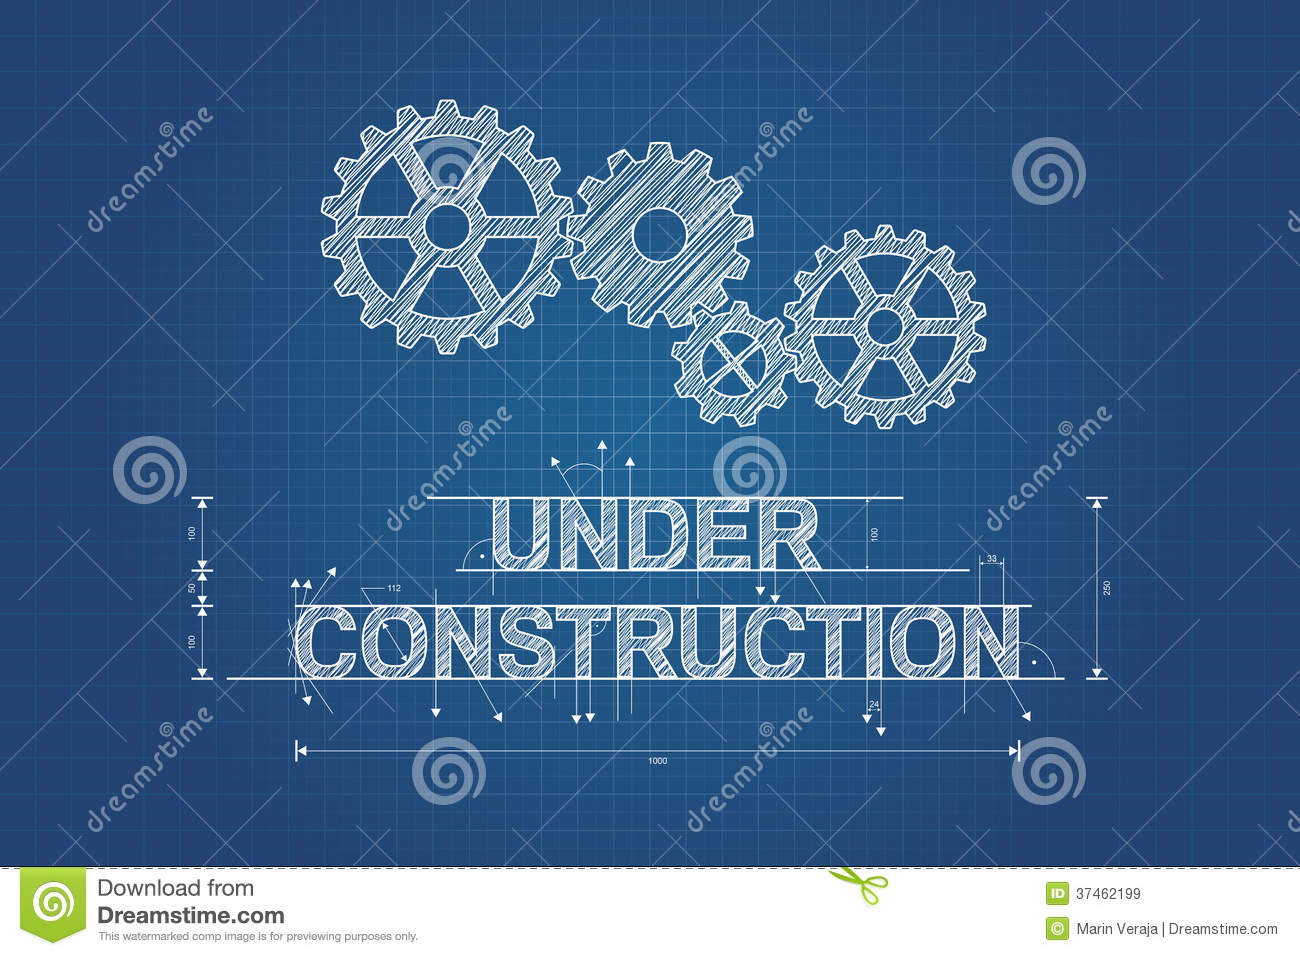 Under Construction Blueprint Technical Drawing Royalty